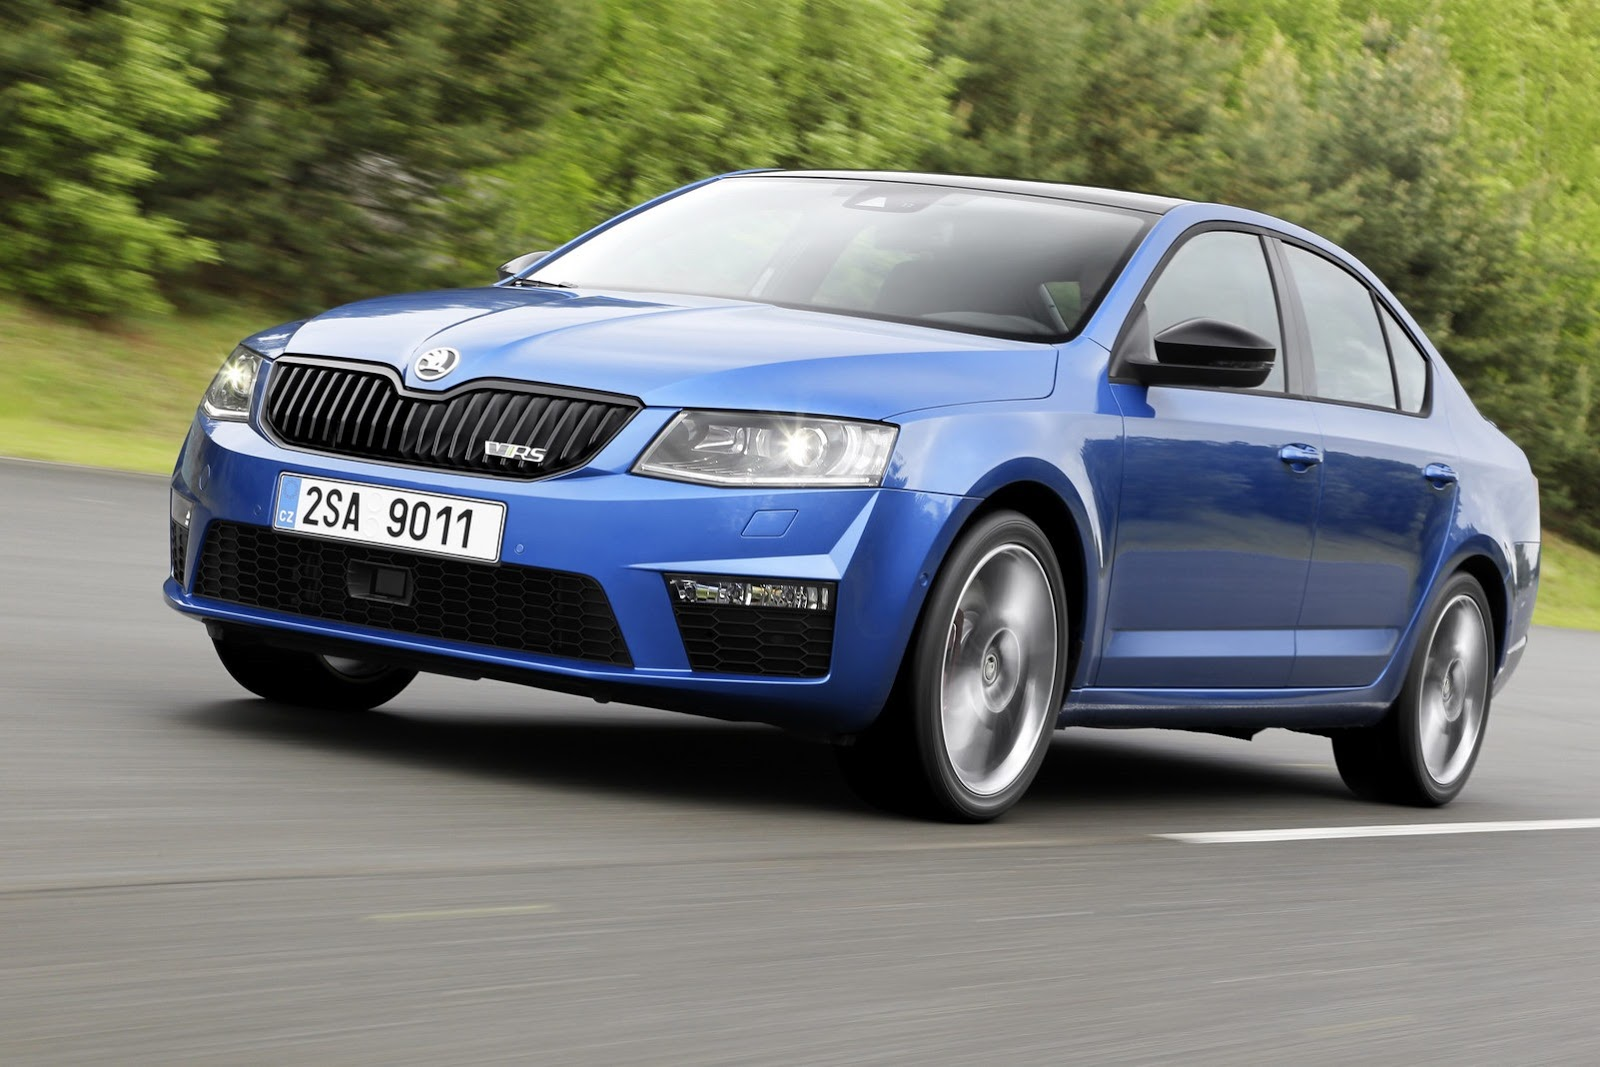 new skoda octavia vrs photo gallery autocar india. Black Bedroom Furniture Sets. Home Design Ideas